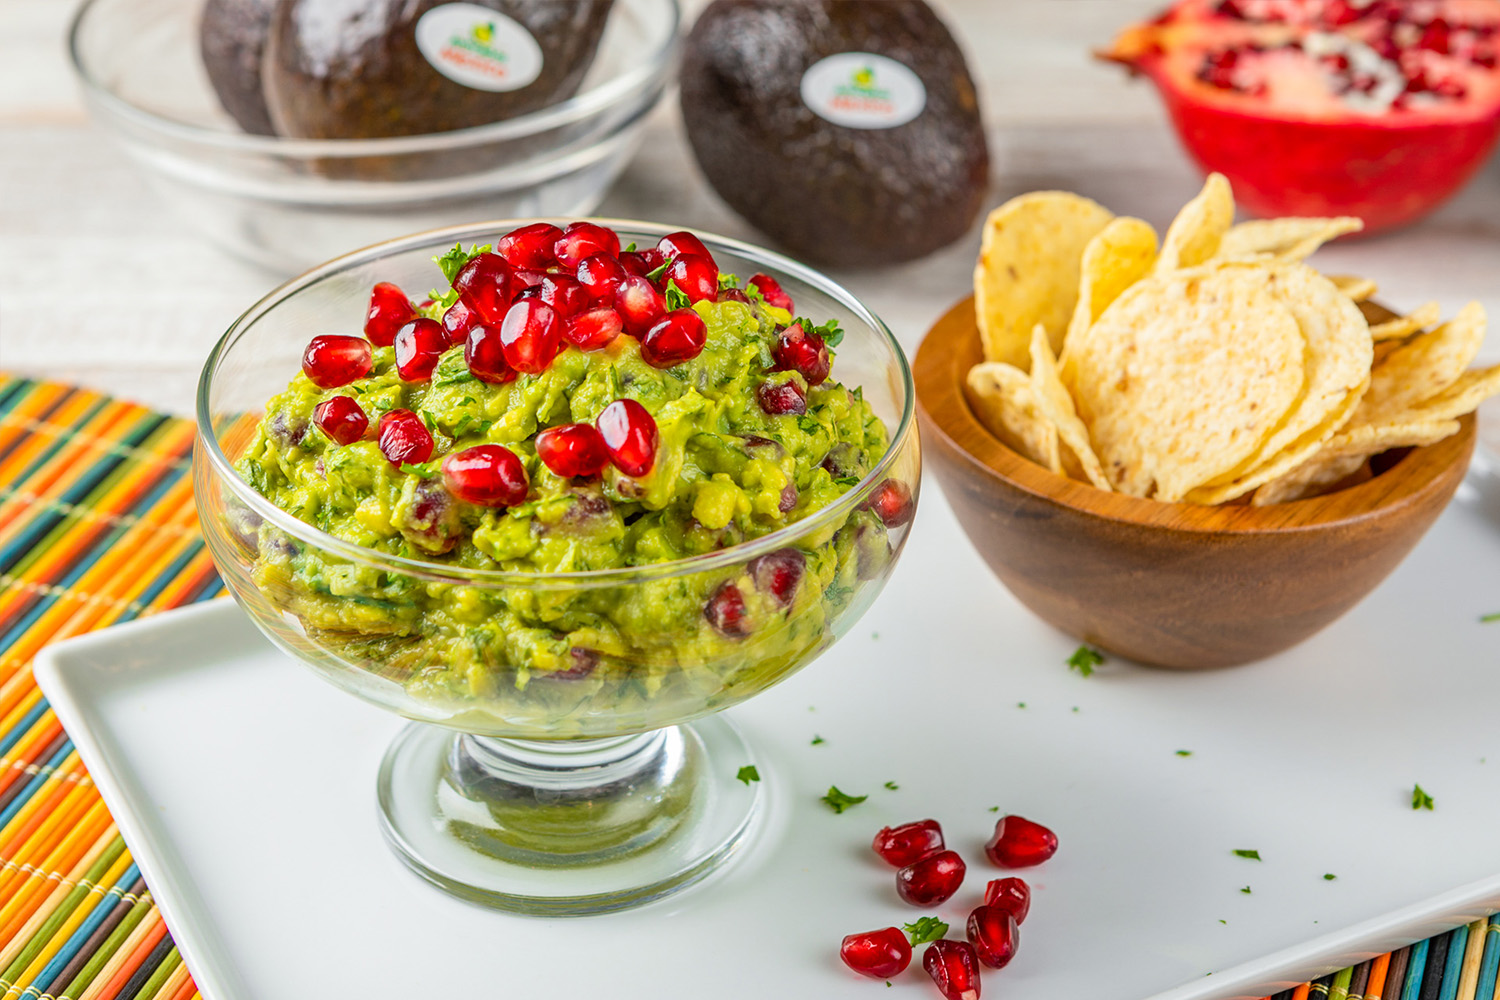 Pomegranate Guacamole, photo by Avocados From Mexico